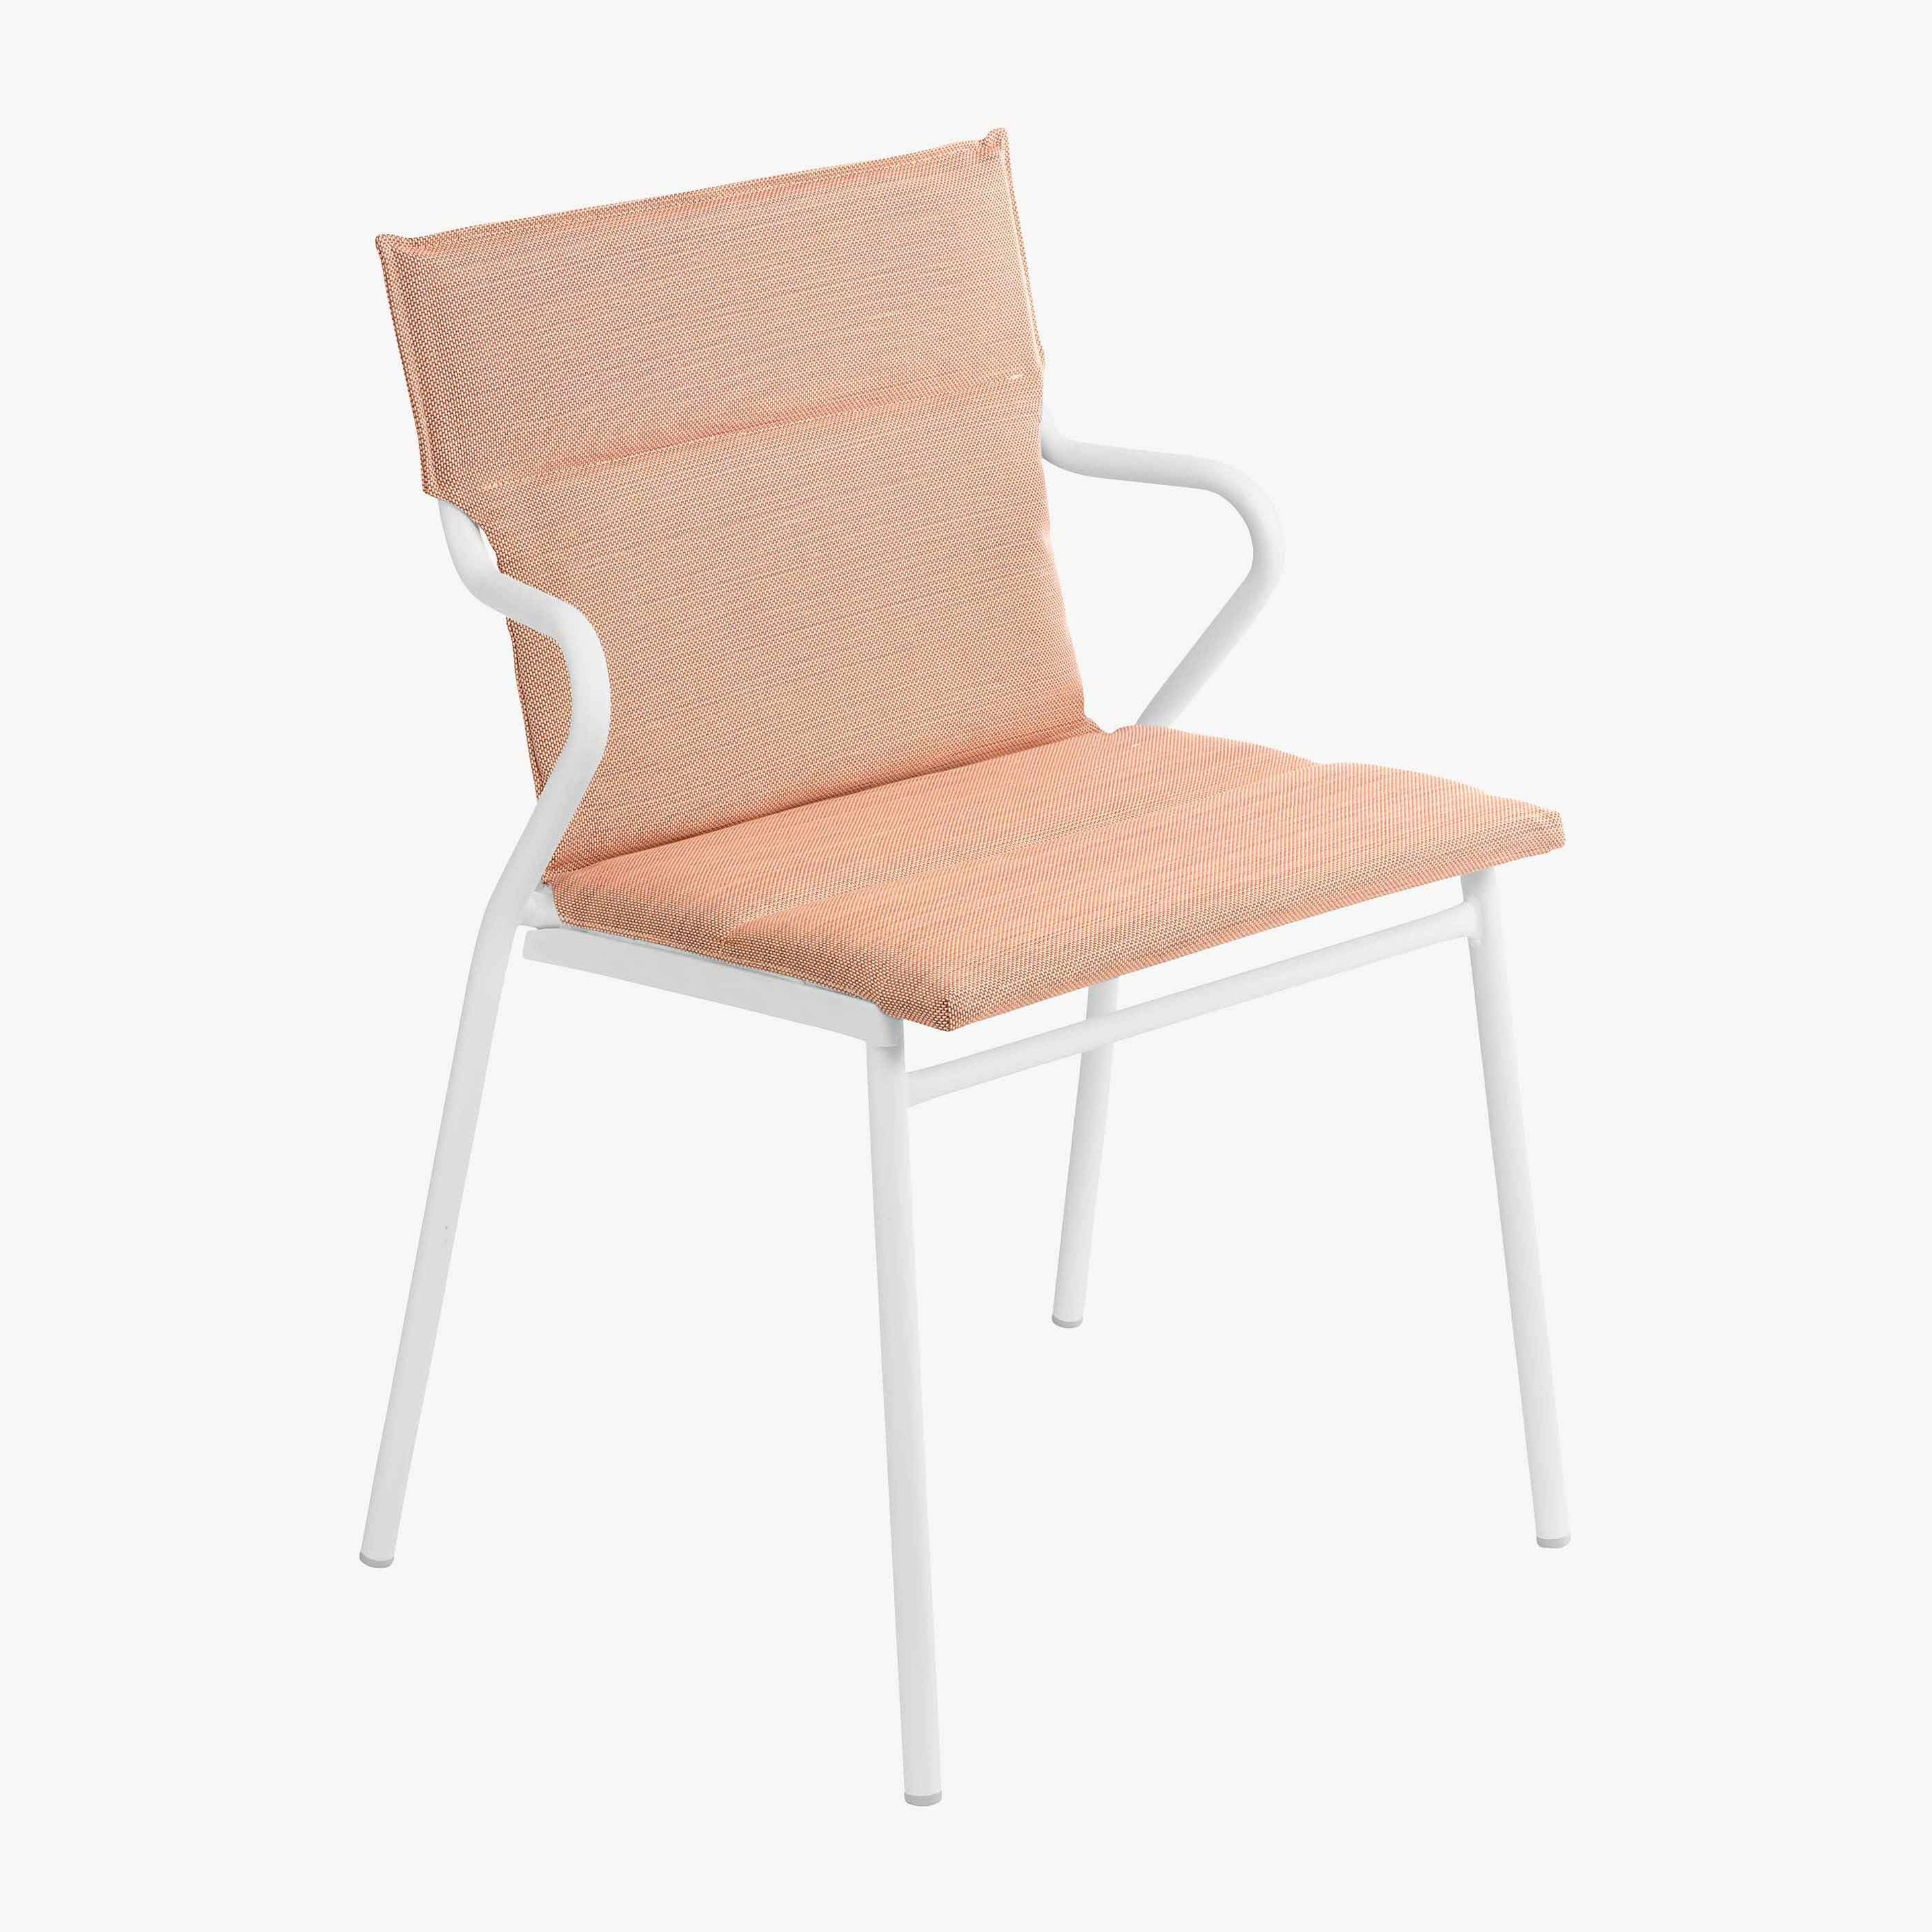 ANCONE FAUTEUIL